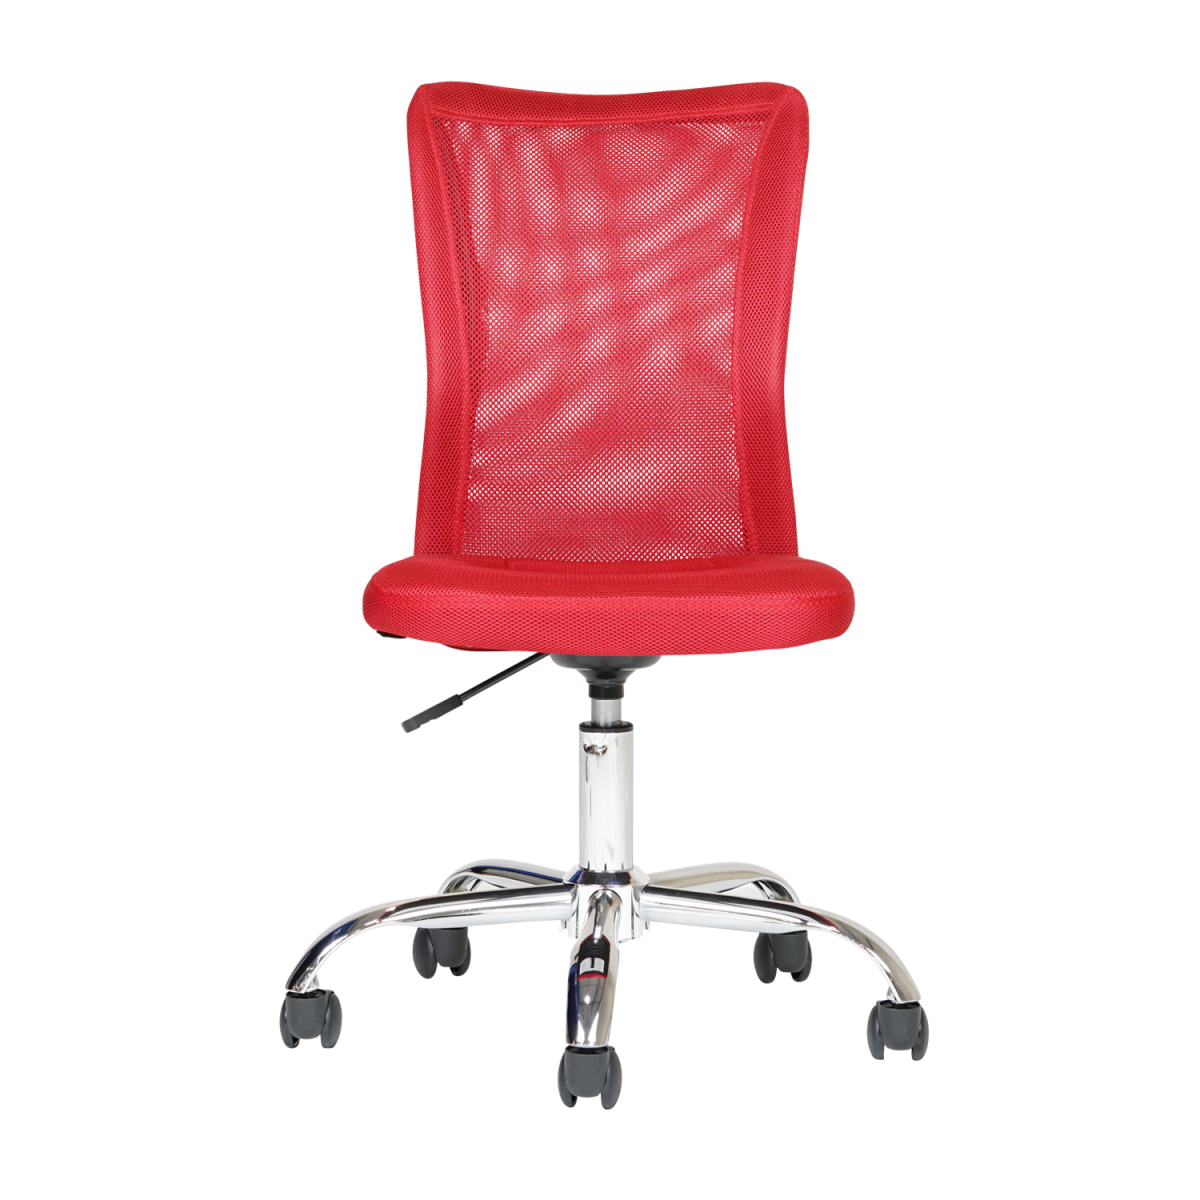 Miraculous Antrim Red Desk Chair Ncnpc Chair Design For Home Ncnpcorg